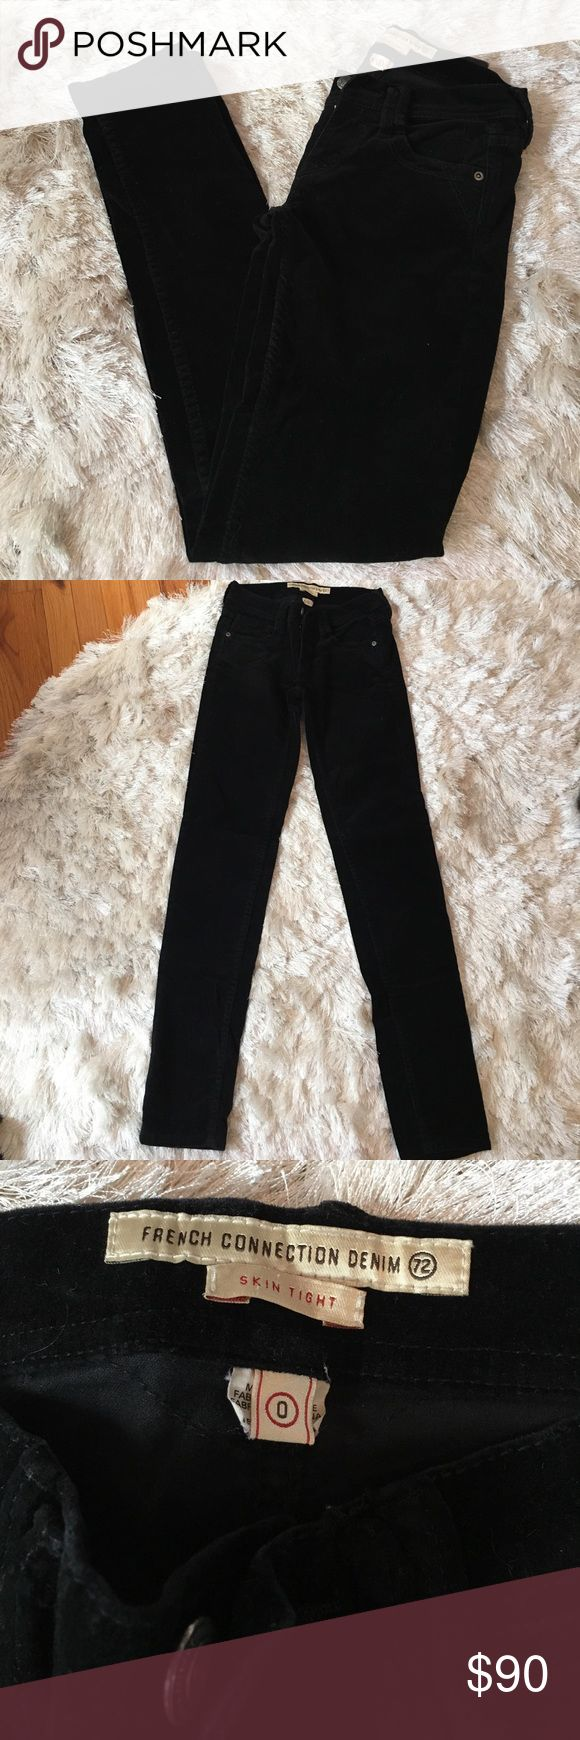 French Connection Velour Jeans French Connection Velour Jeans. Skin tight. Excellent condition. French Connection Jeans Skinny